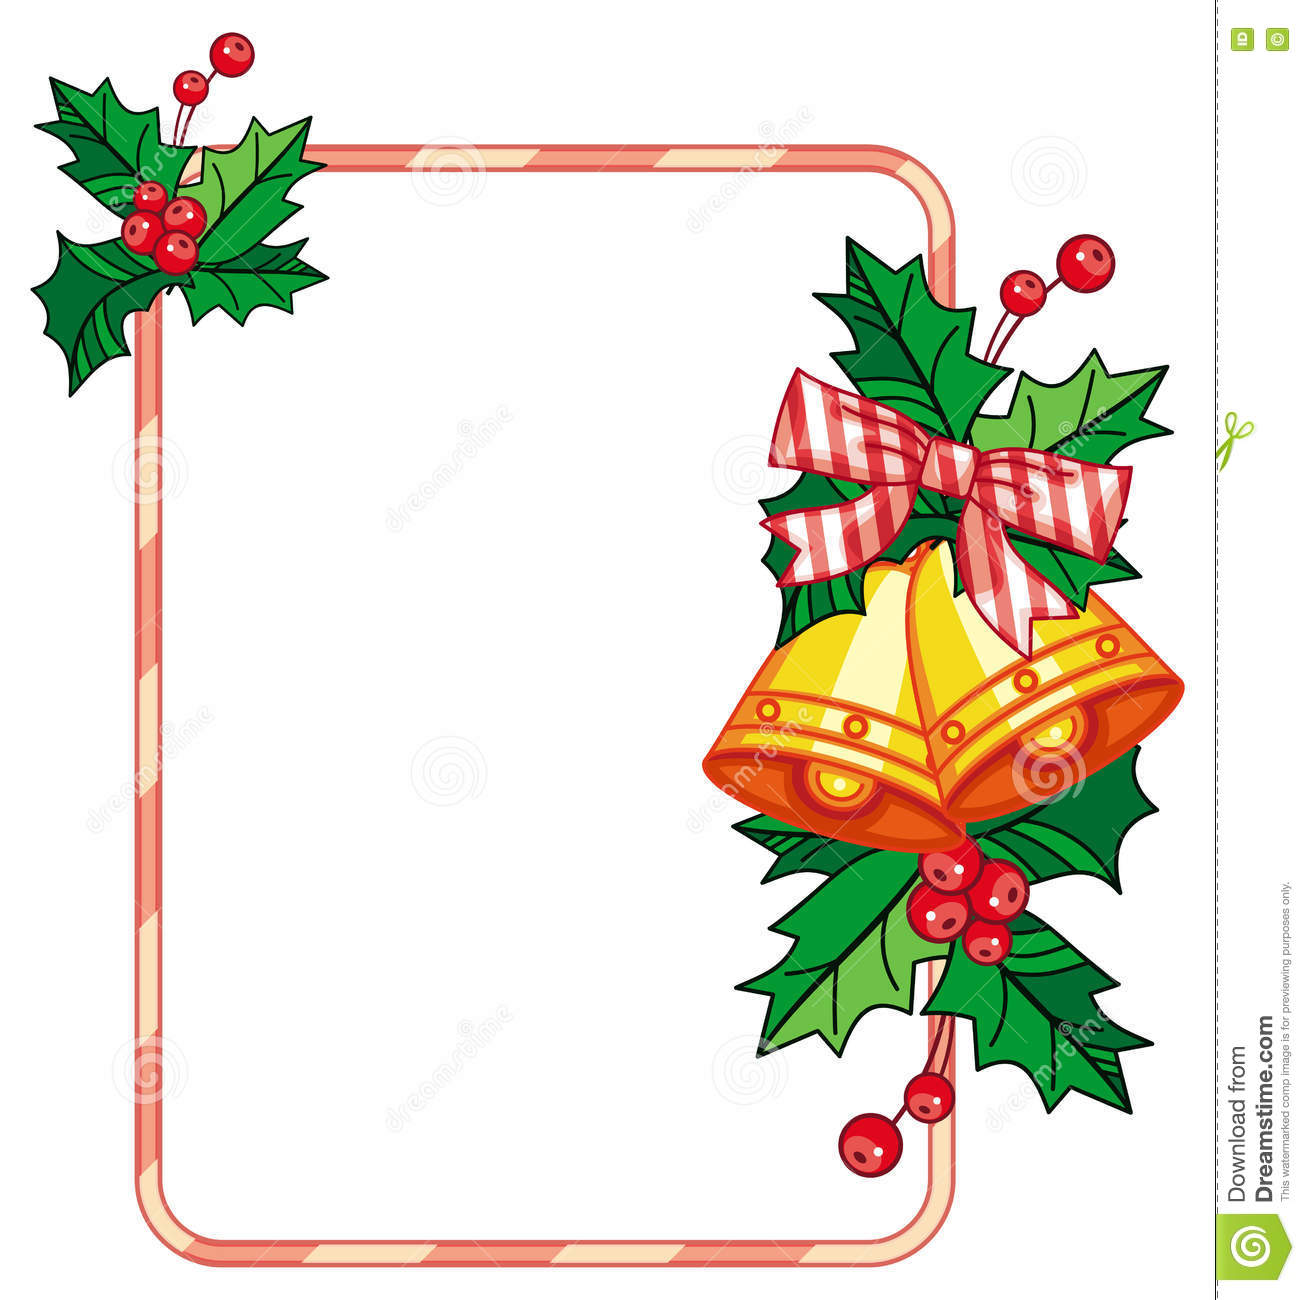 vertical frame with holly berry and jingle bells stock illustration rh dreamstime com Jingle Bells Black and White Clip Art jingle bell clip art border